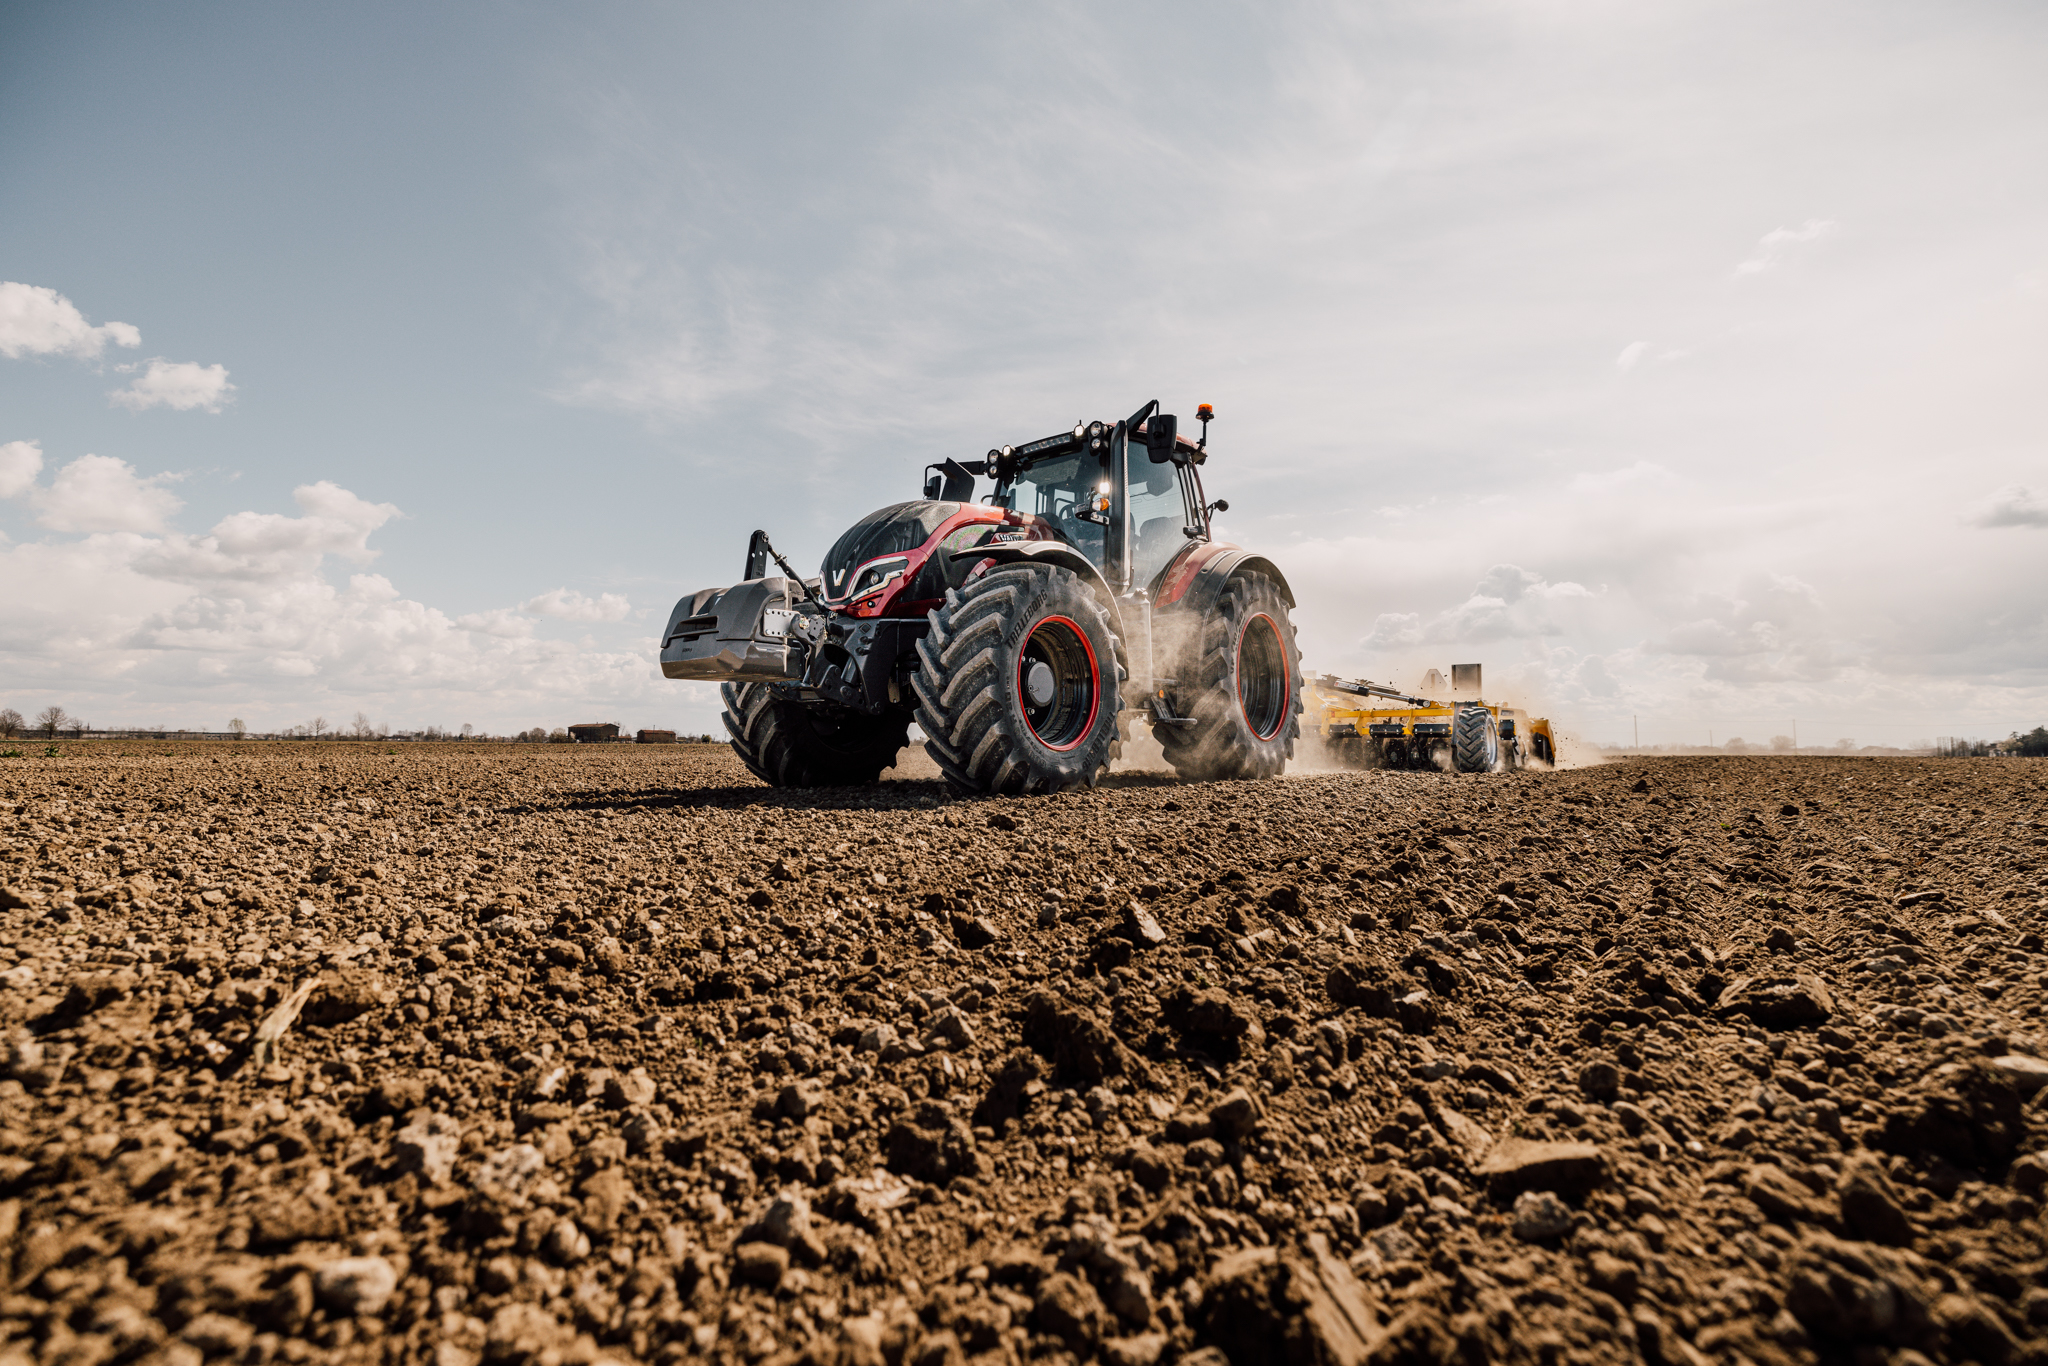 valtra-t-series-italy-img-2021-0921-lowres.jpg